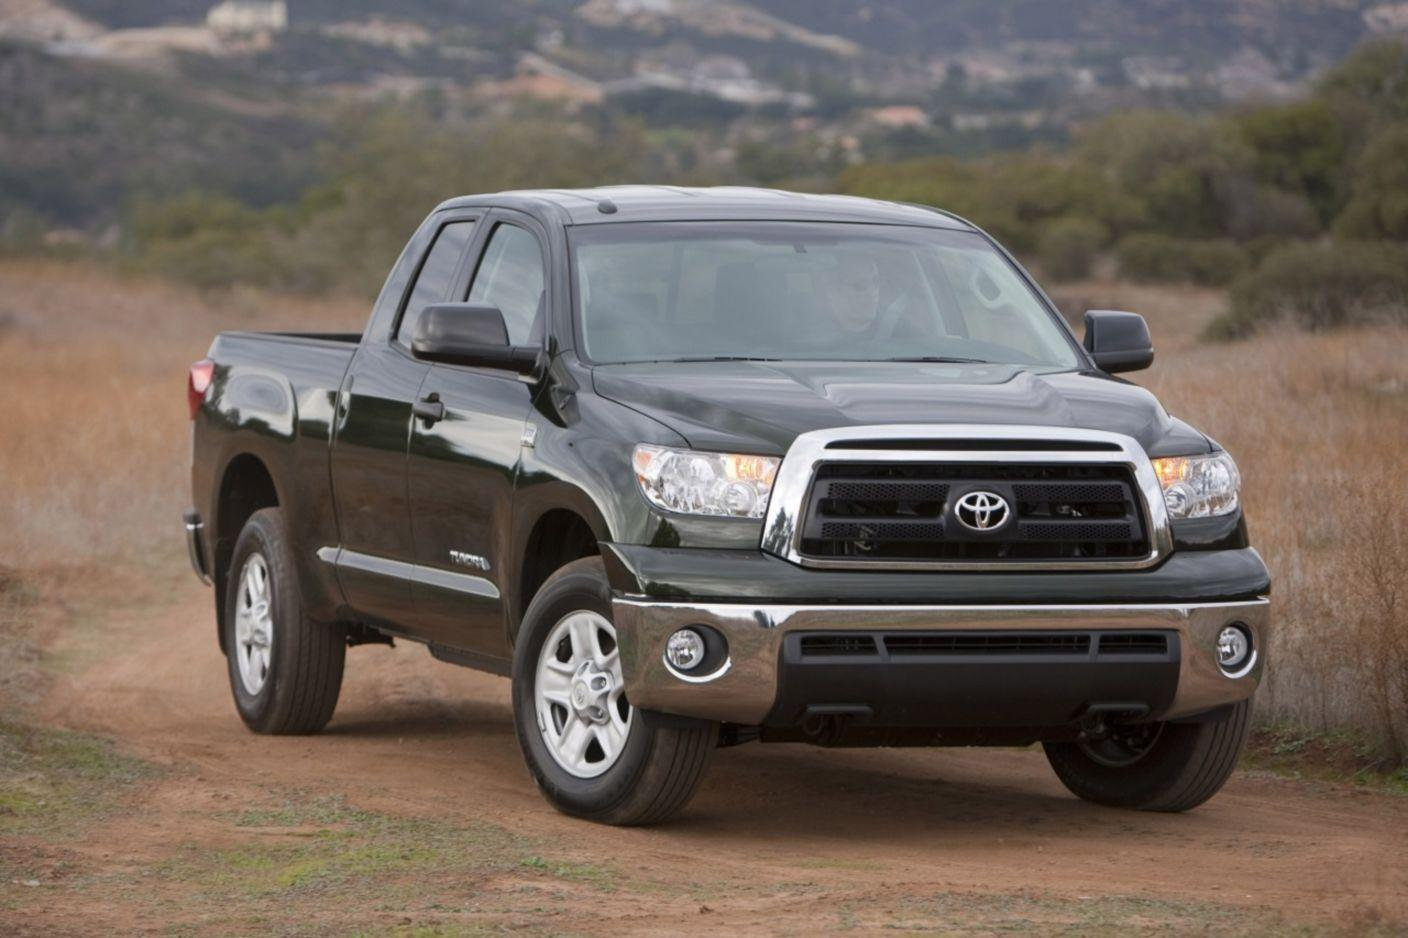 Pickup Trucks Toyota Tundra Wallpaper: Desktop HD Wallpapers